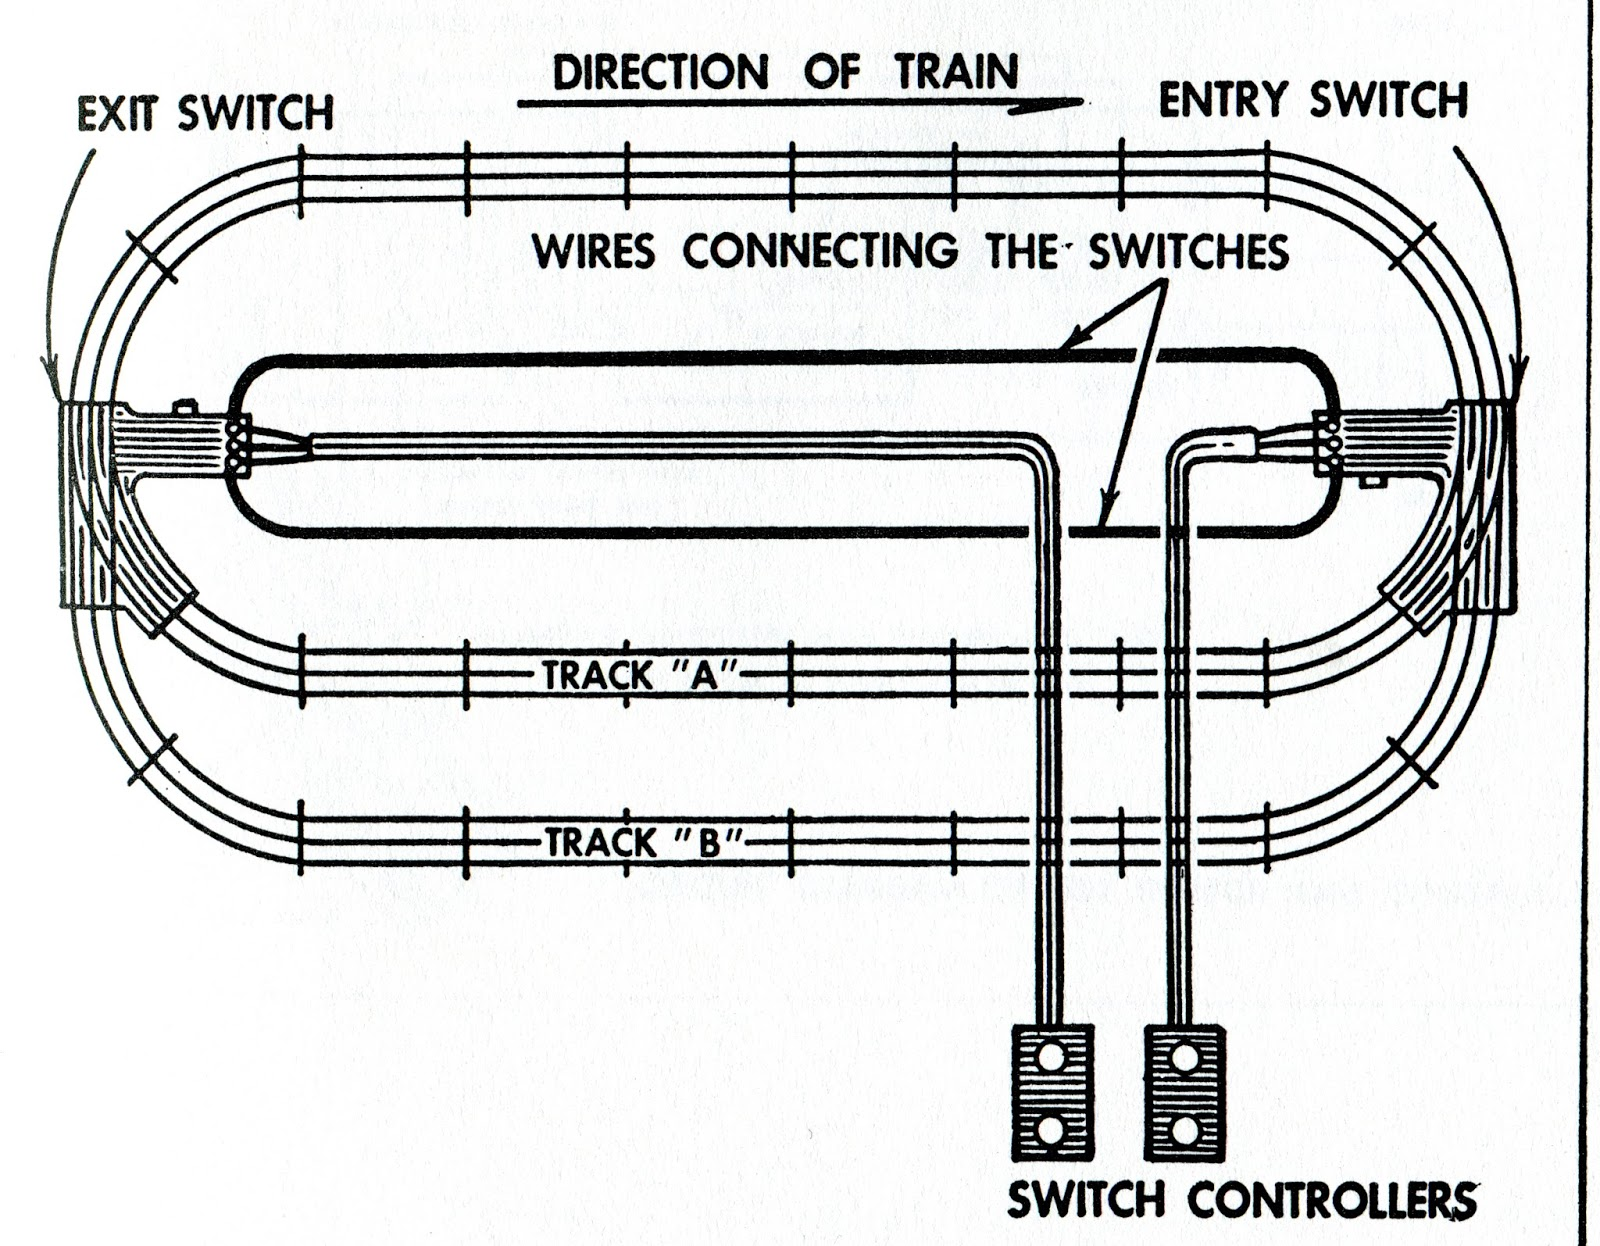 S Gauge Train Track Wiring Opinions About Diagram Plans For O Dodge Dynasty Harness Layout American Flyer Trains